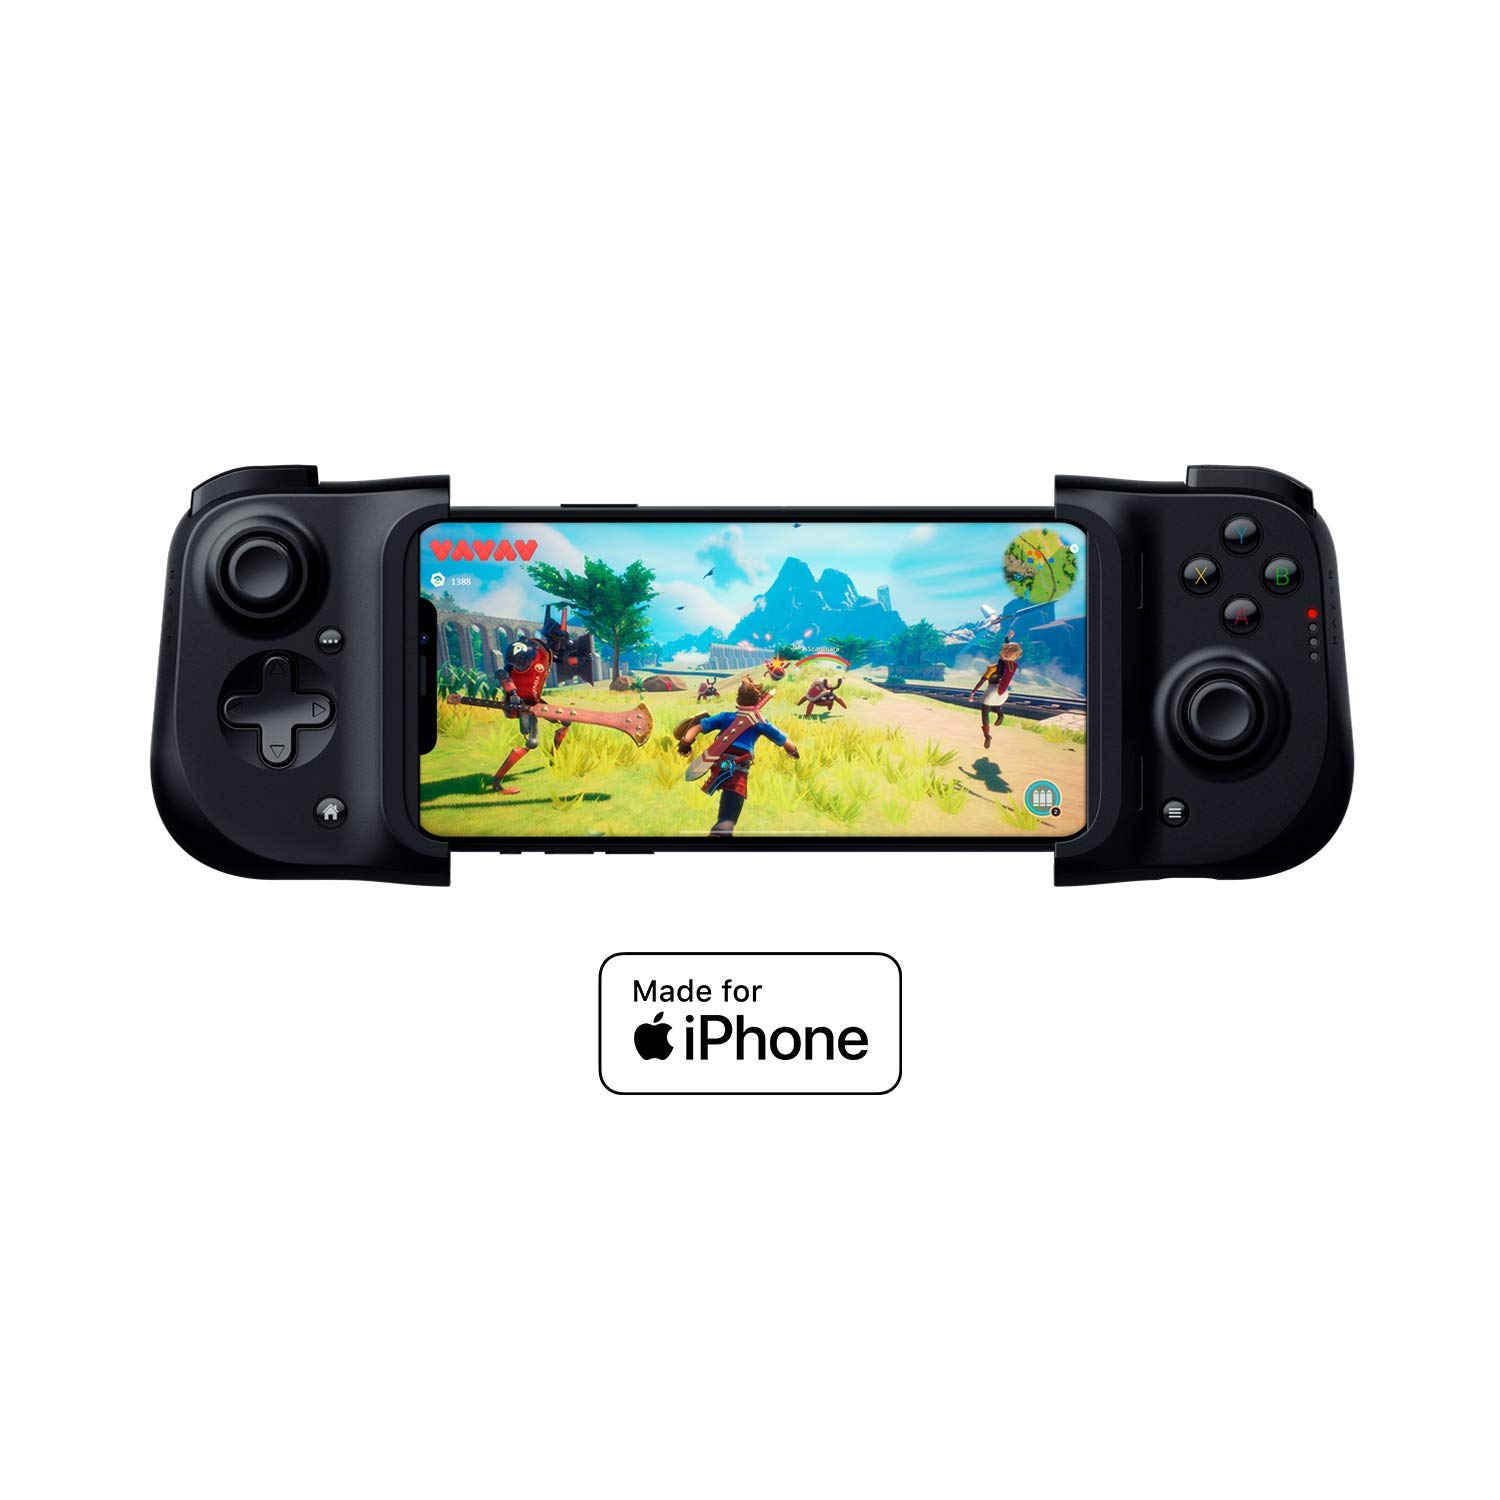 Razer Kishi Mobile Game Controller / Gamepad for iPhone iOS: Works with most iPhones – iPhone X and 11 - Apple Arcade - Lightning Port Passthrough Charging - Mobile Controller Grip - MFi Certified